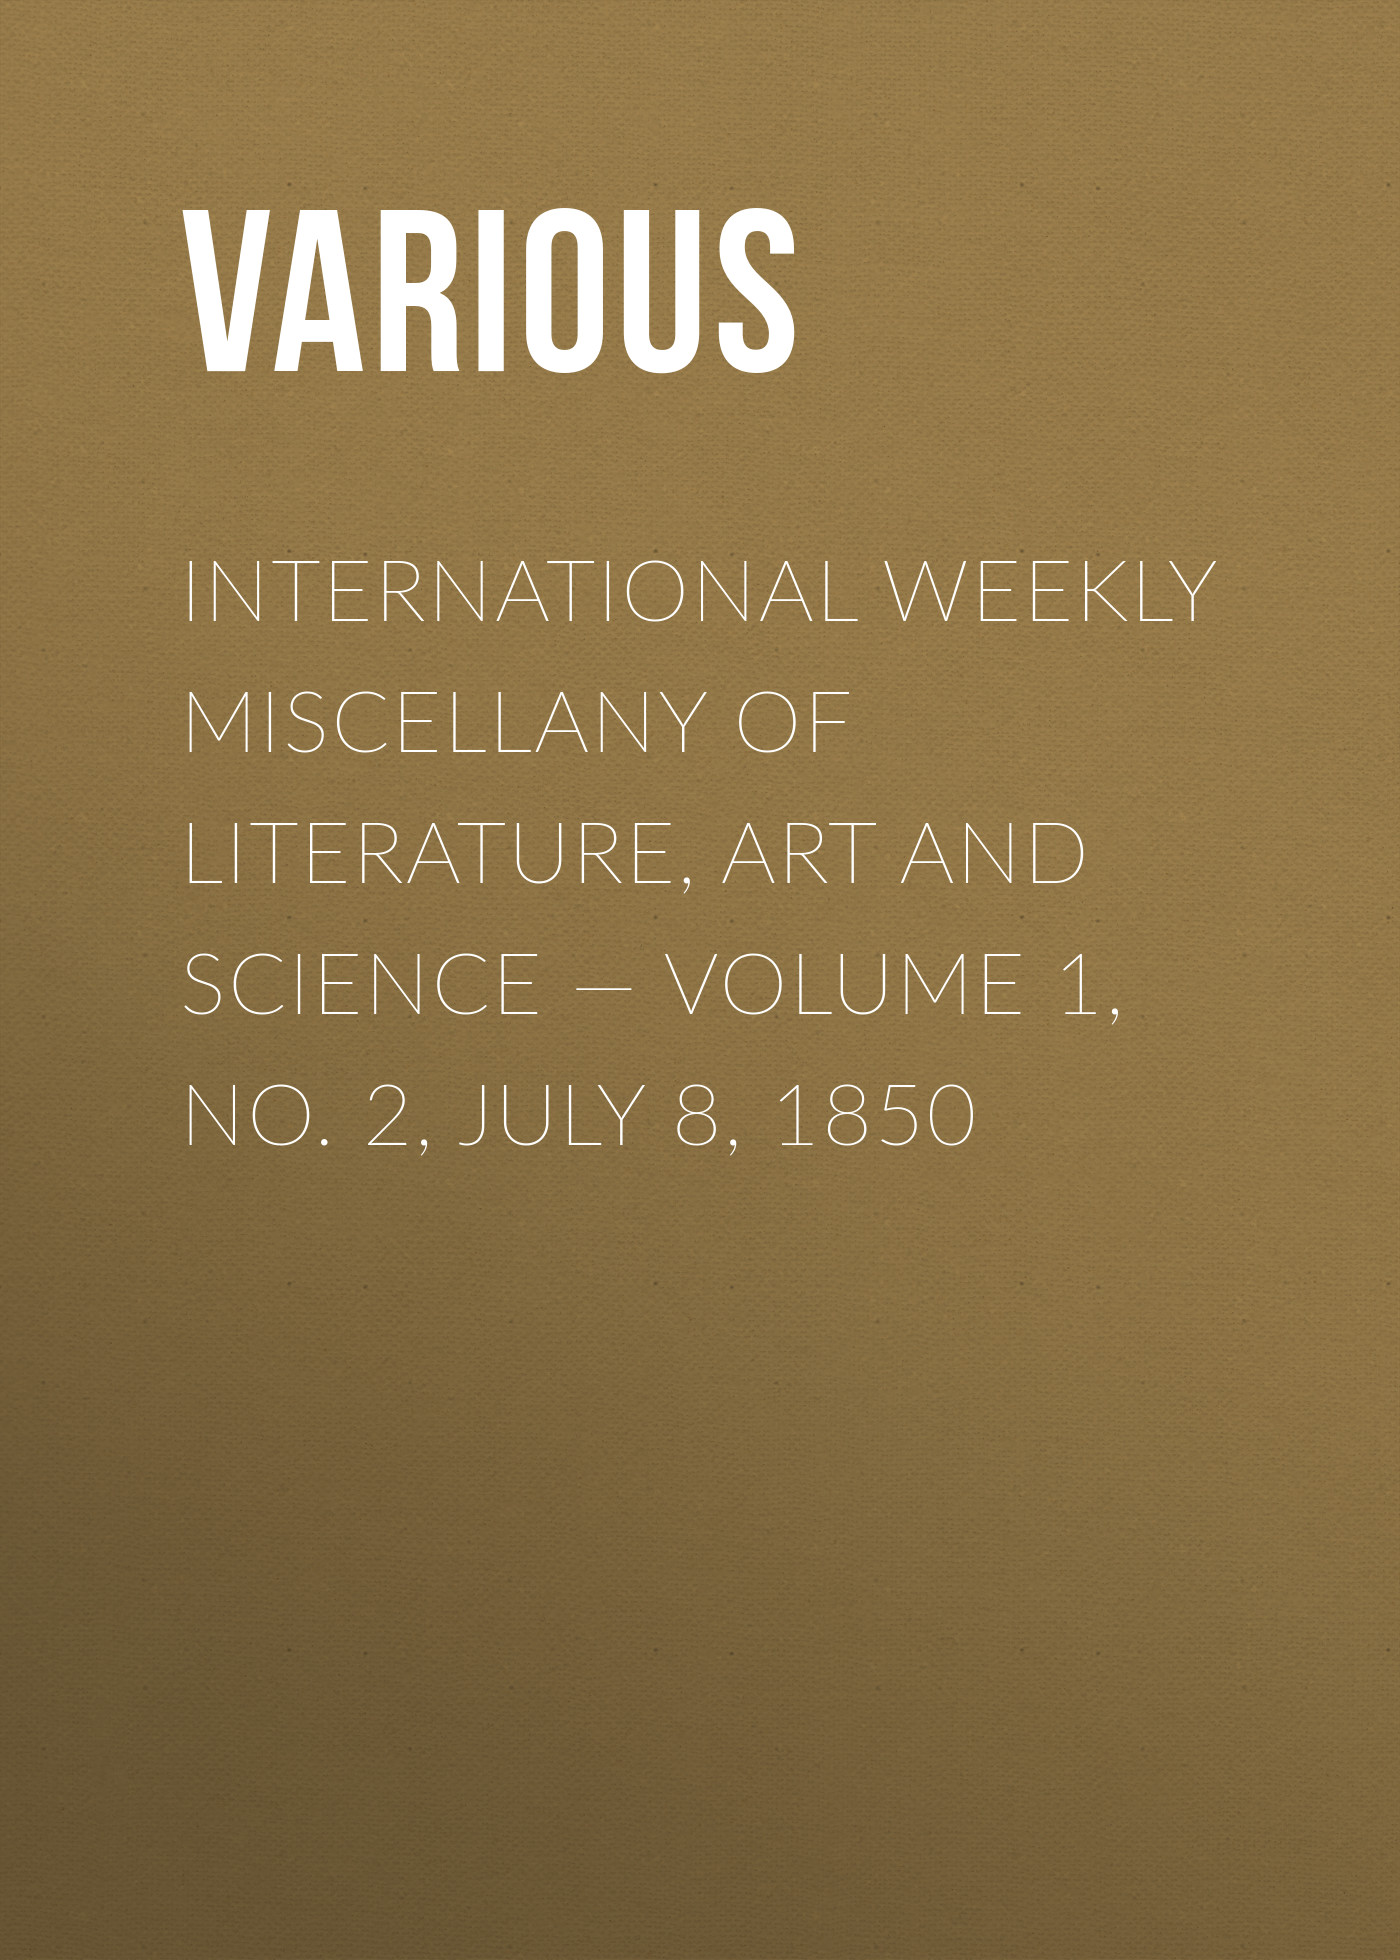 Various International Weekly Miscellany of Literature, Art and Science — Volume 1, No. 2, July 8, 1850 журнал international science project